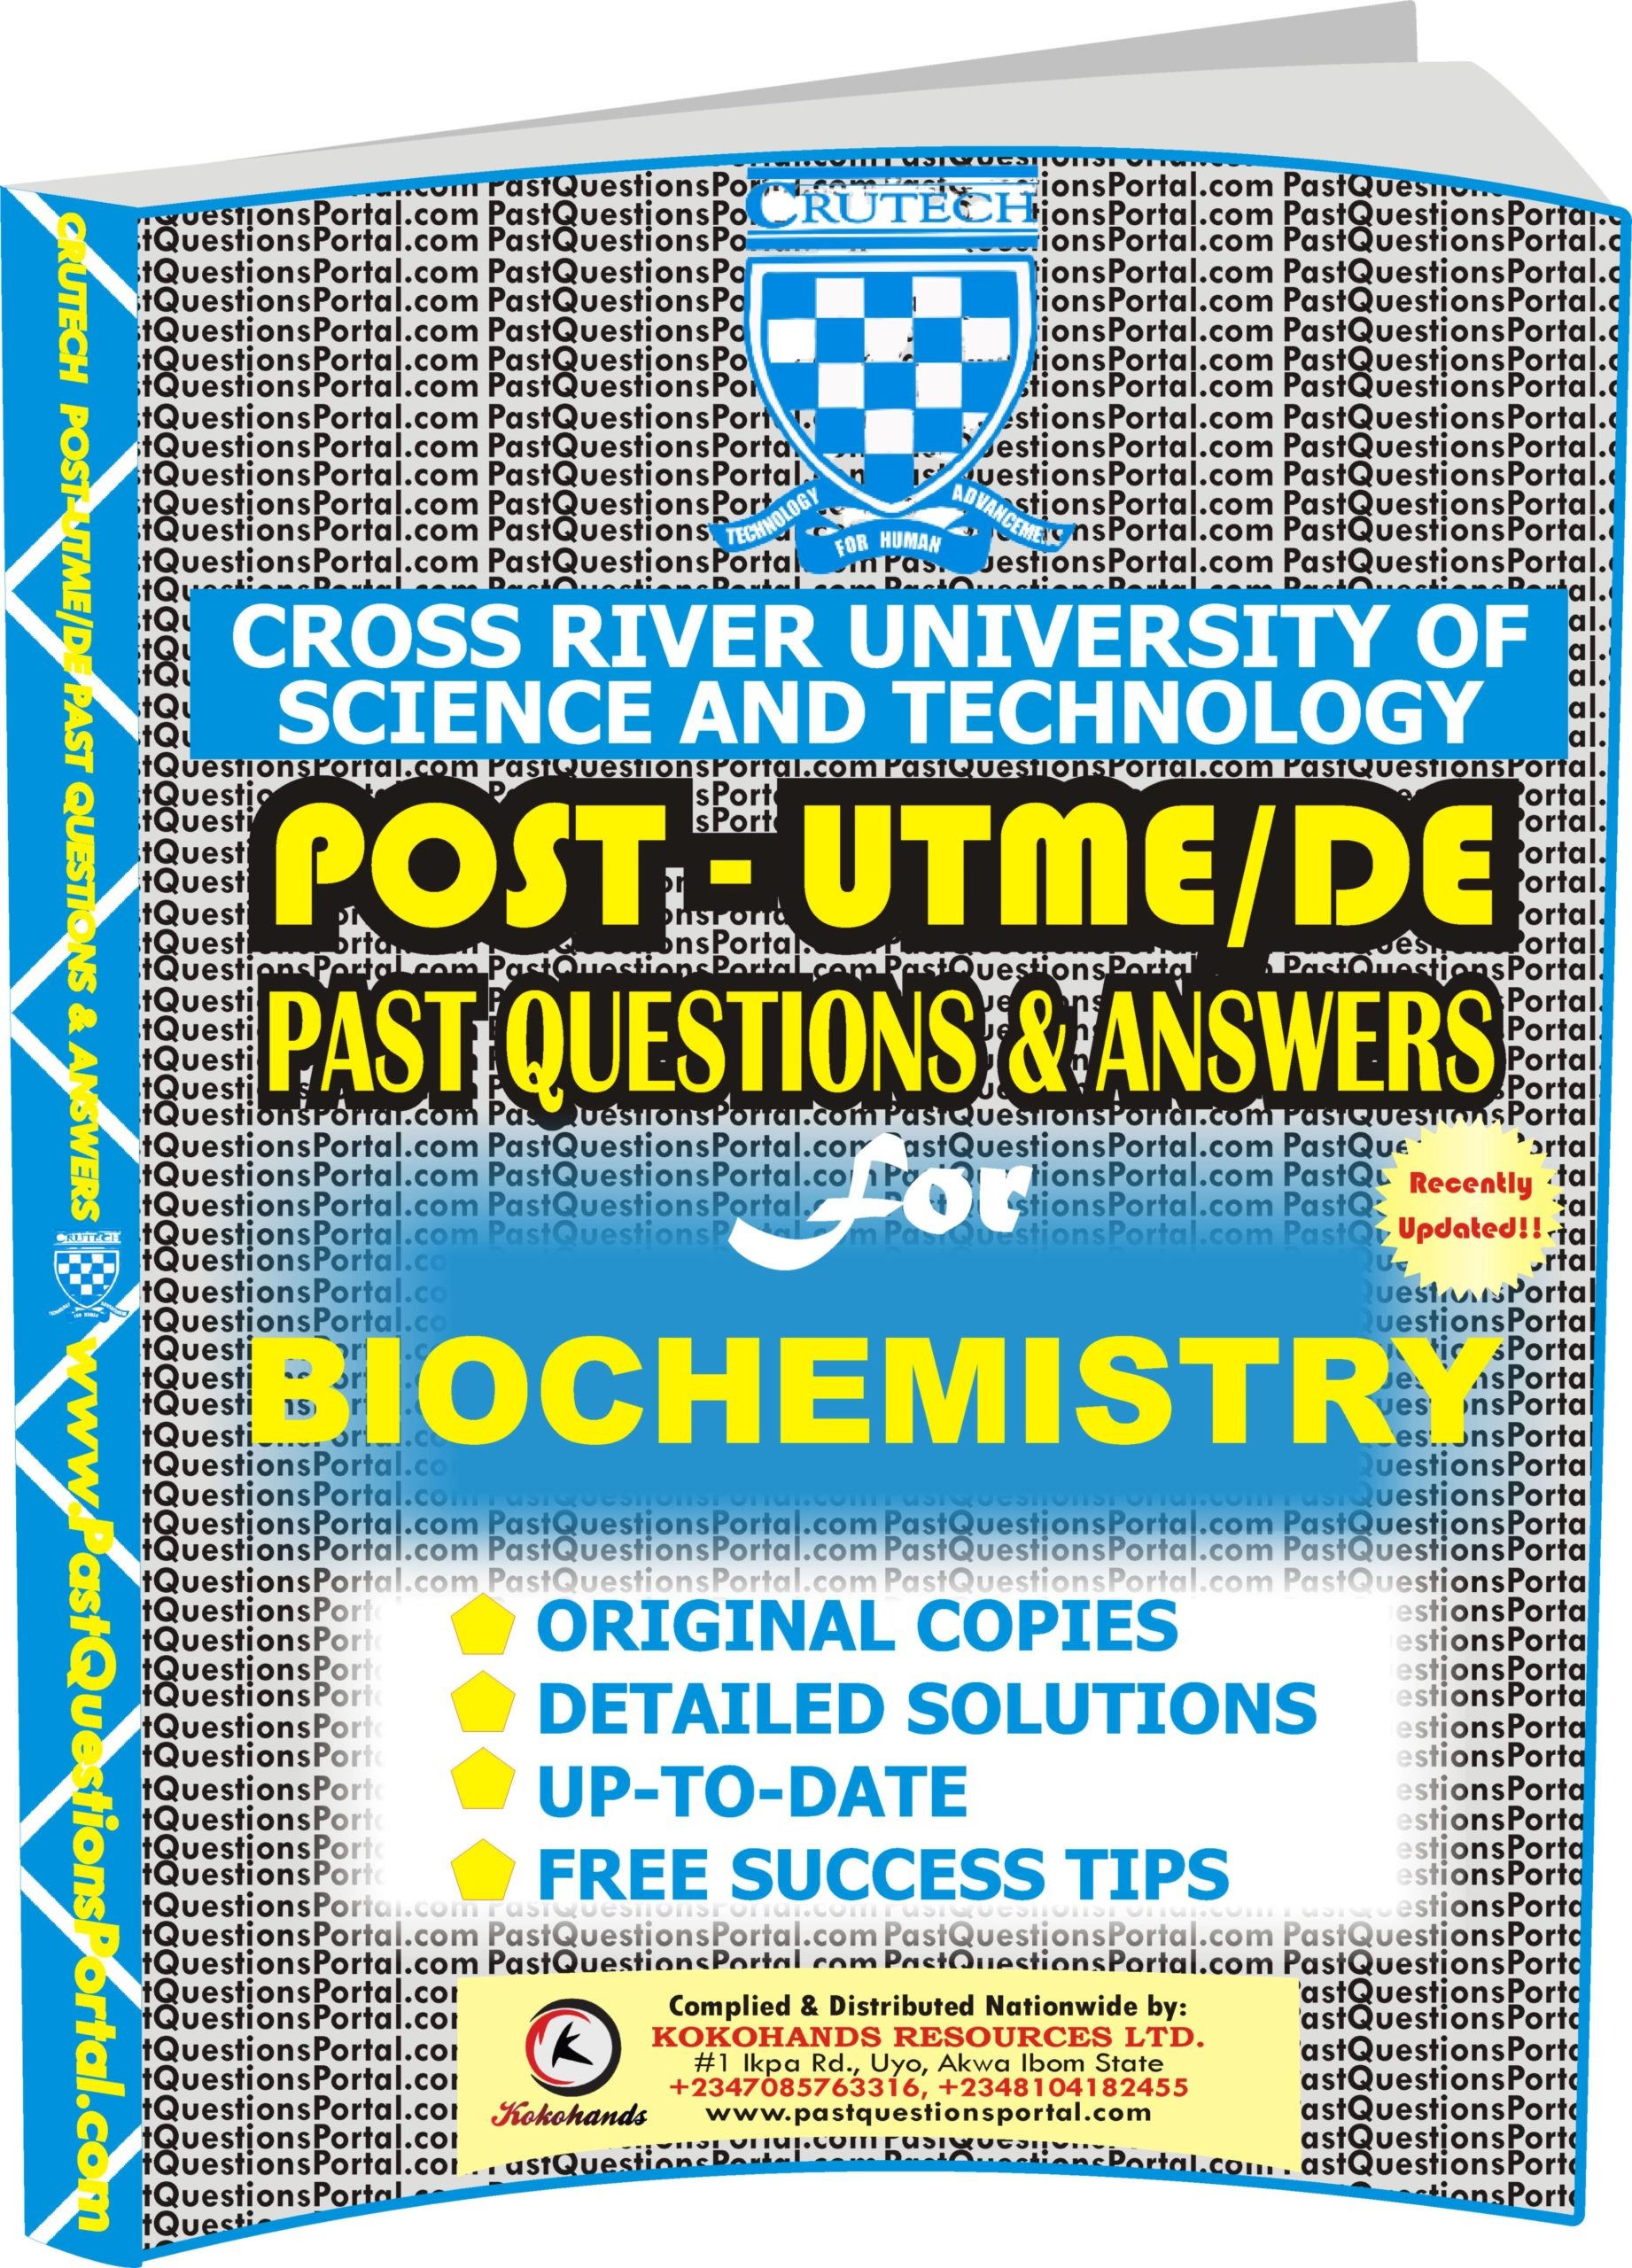 CRUTECH Post UTME Past Questions for BIOCHEMISTRY